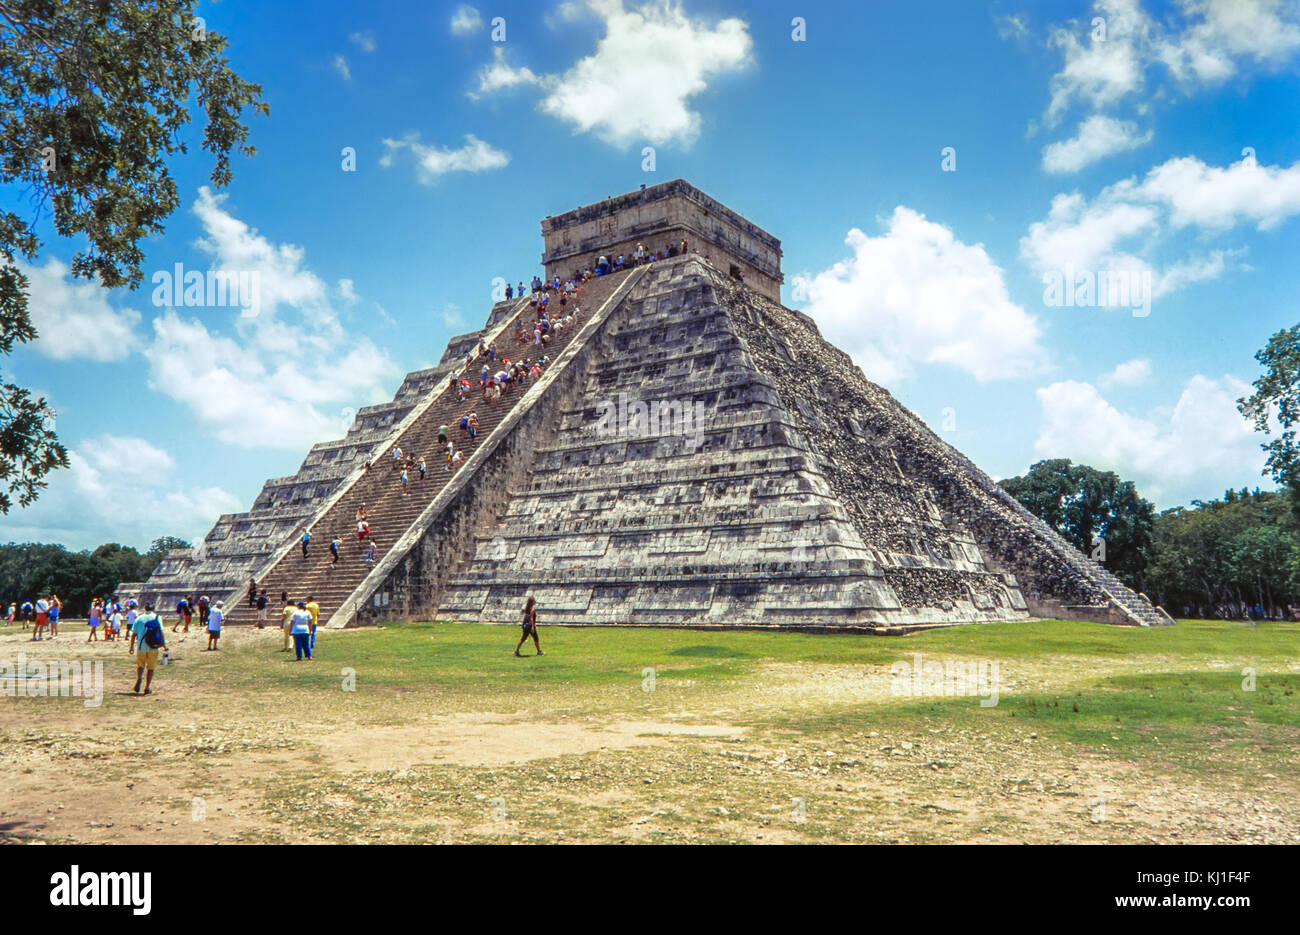 Temple of Kukulkan, pyramid in Chichen Itza, Yucatan, Mexico - Stock Image